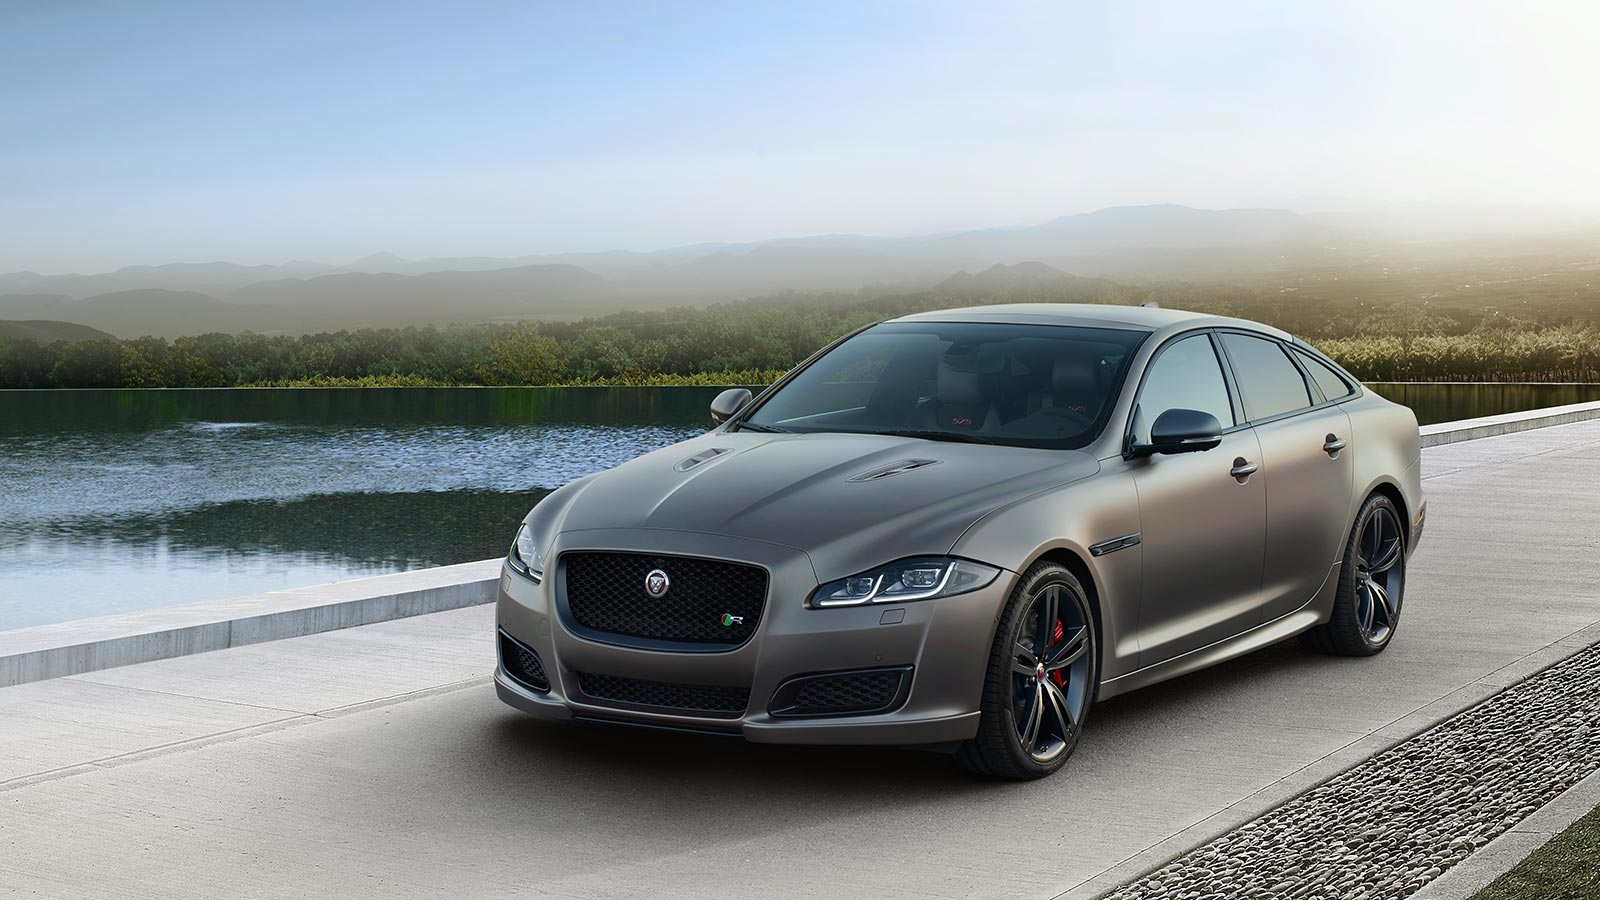 Jaguar XJR575 Driving on Road Near Water.